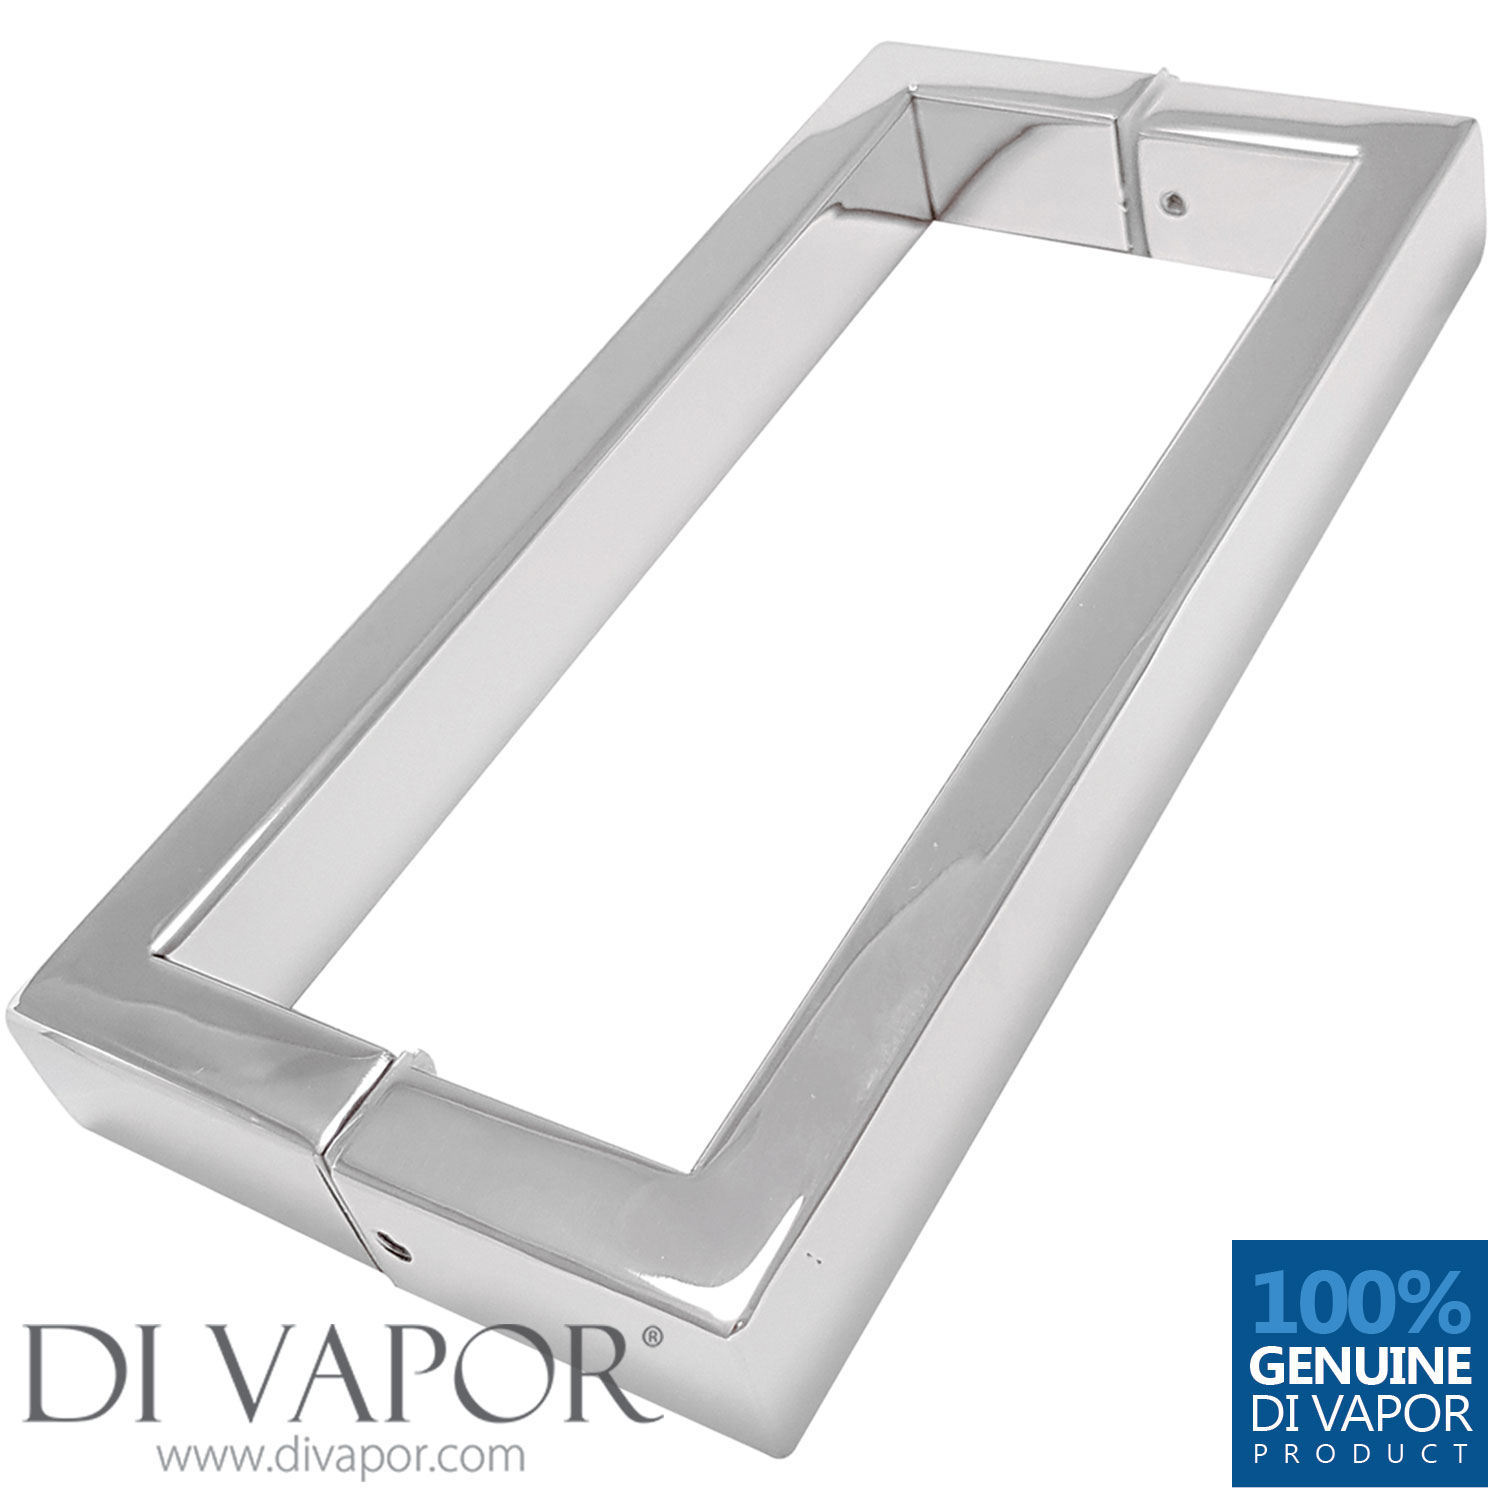 175mm Shower Door Handles 17 5cm Hole to Hole Stainless Steel